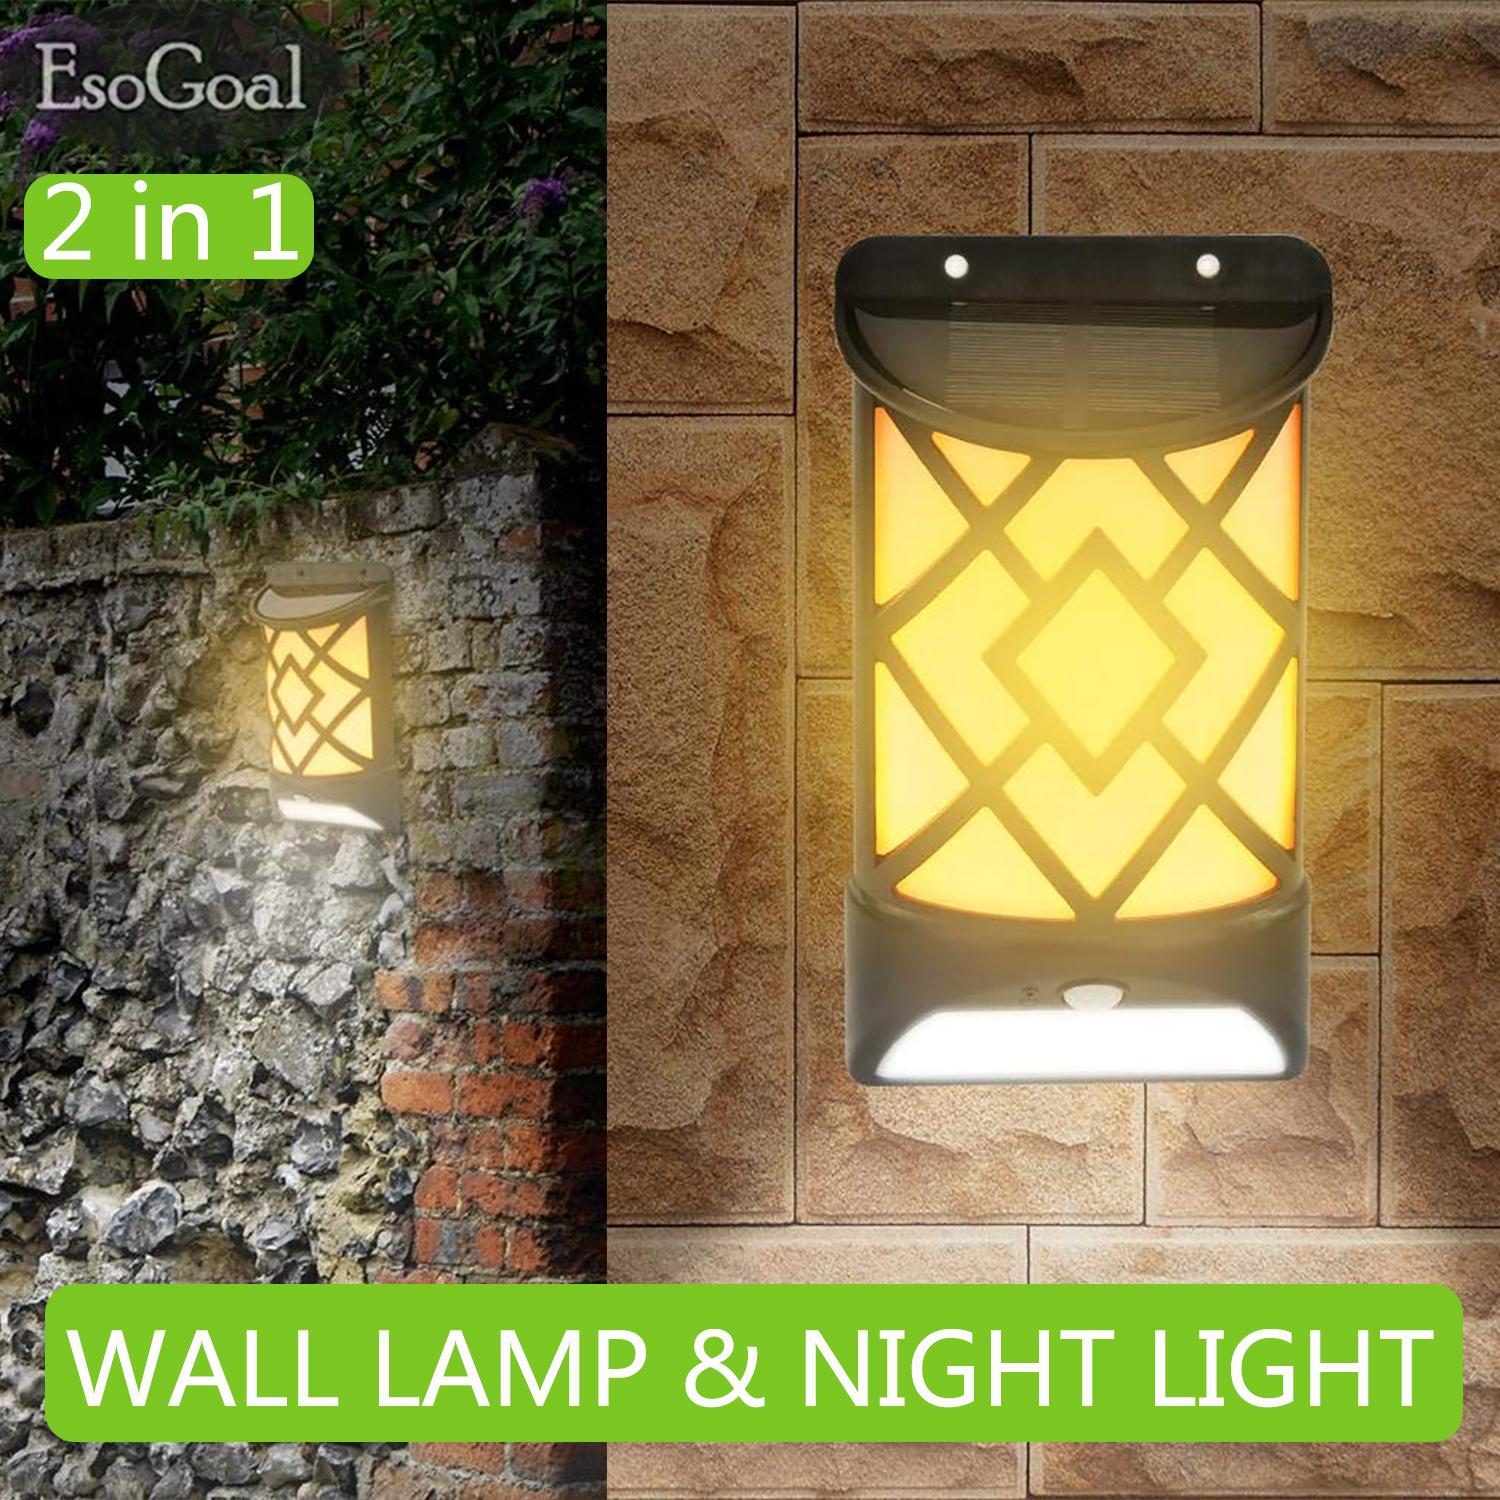 Outdoor Lighting For Sale Lights Prices Brands Review Light Unit And Method On Wiring A Switch To An Outside Esogoal 2 In 1 Solar Sensor Wall Flame Flickering Lamp Waterproof